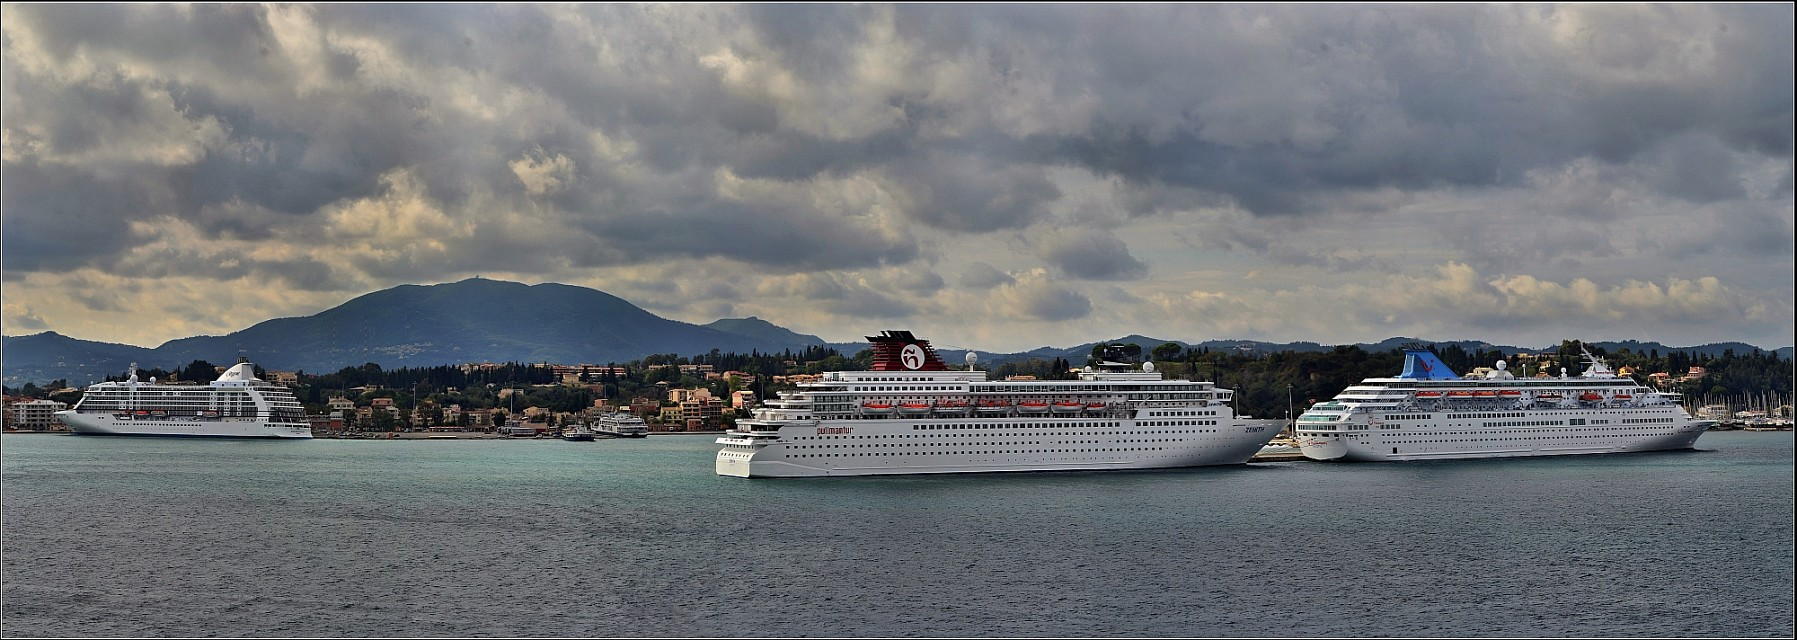 Cruise Ships in Corfu - Corfu